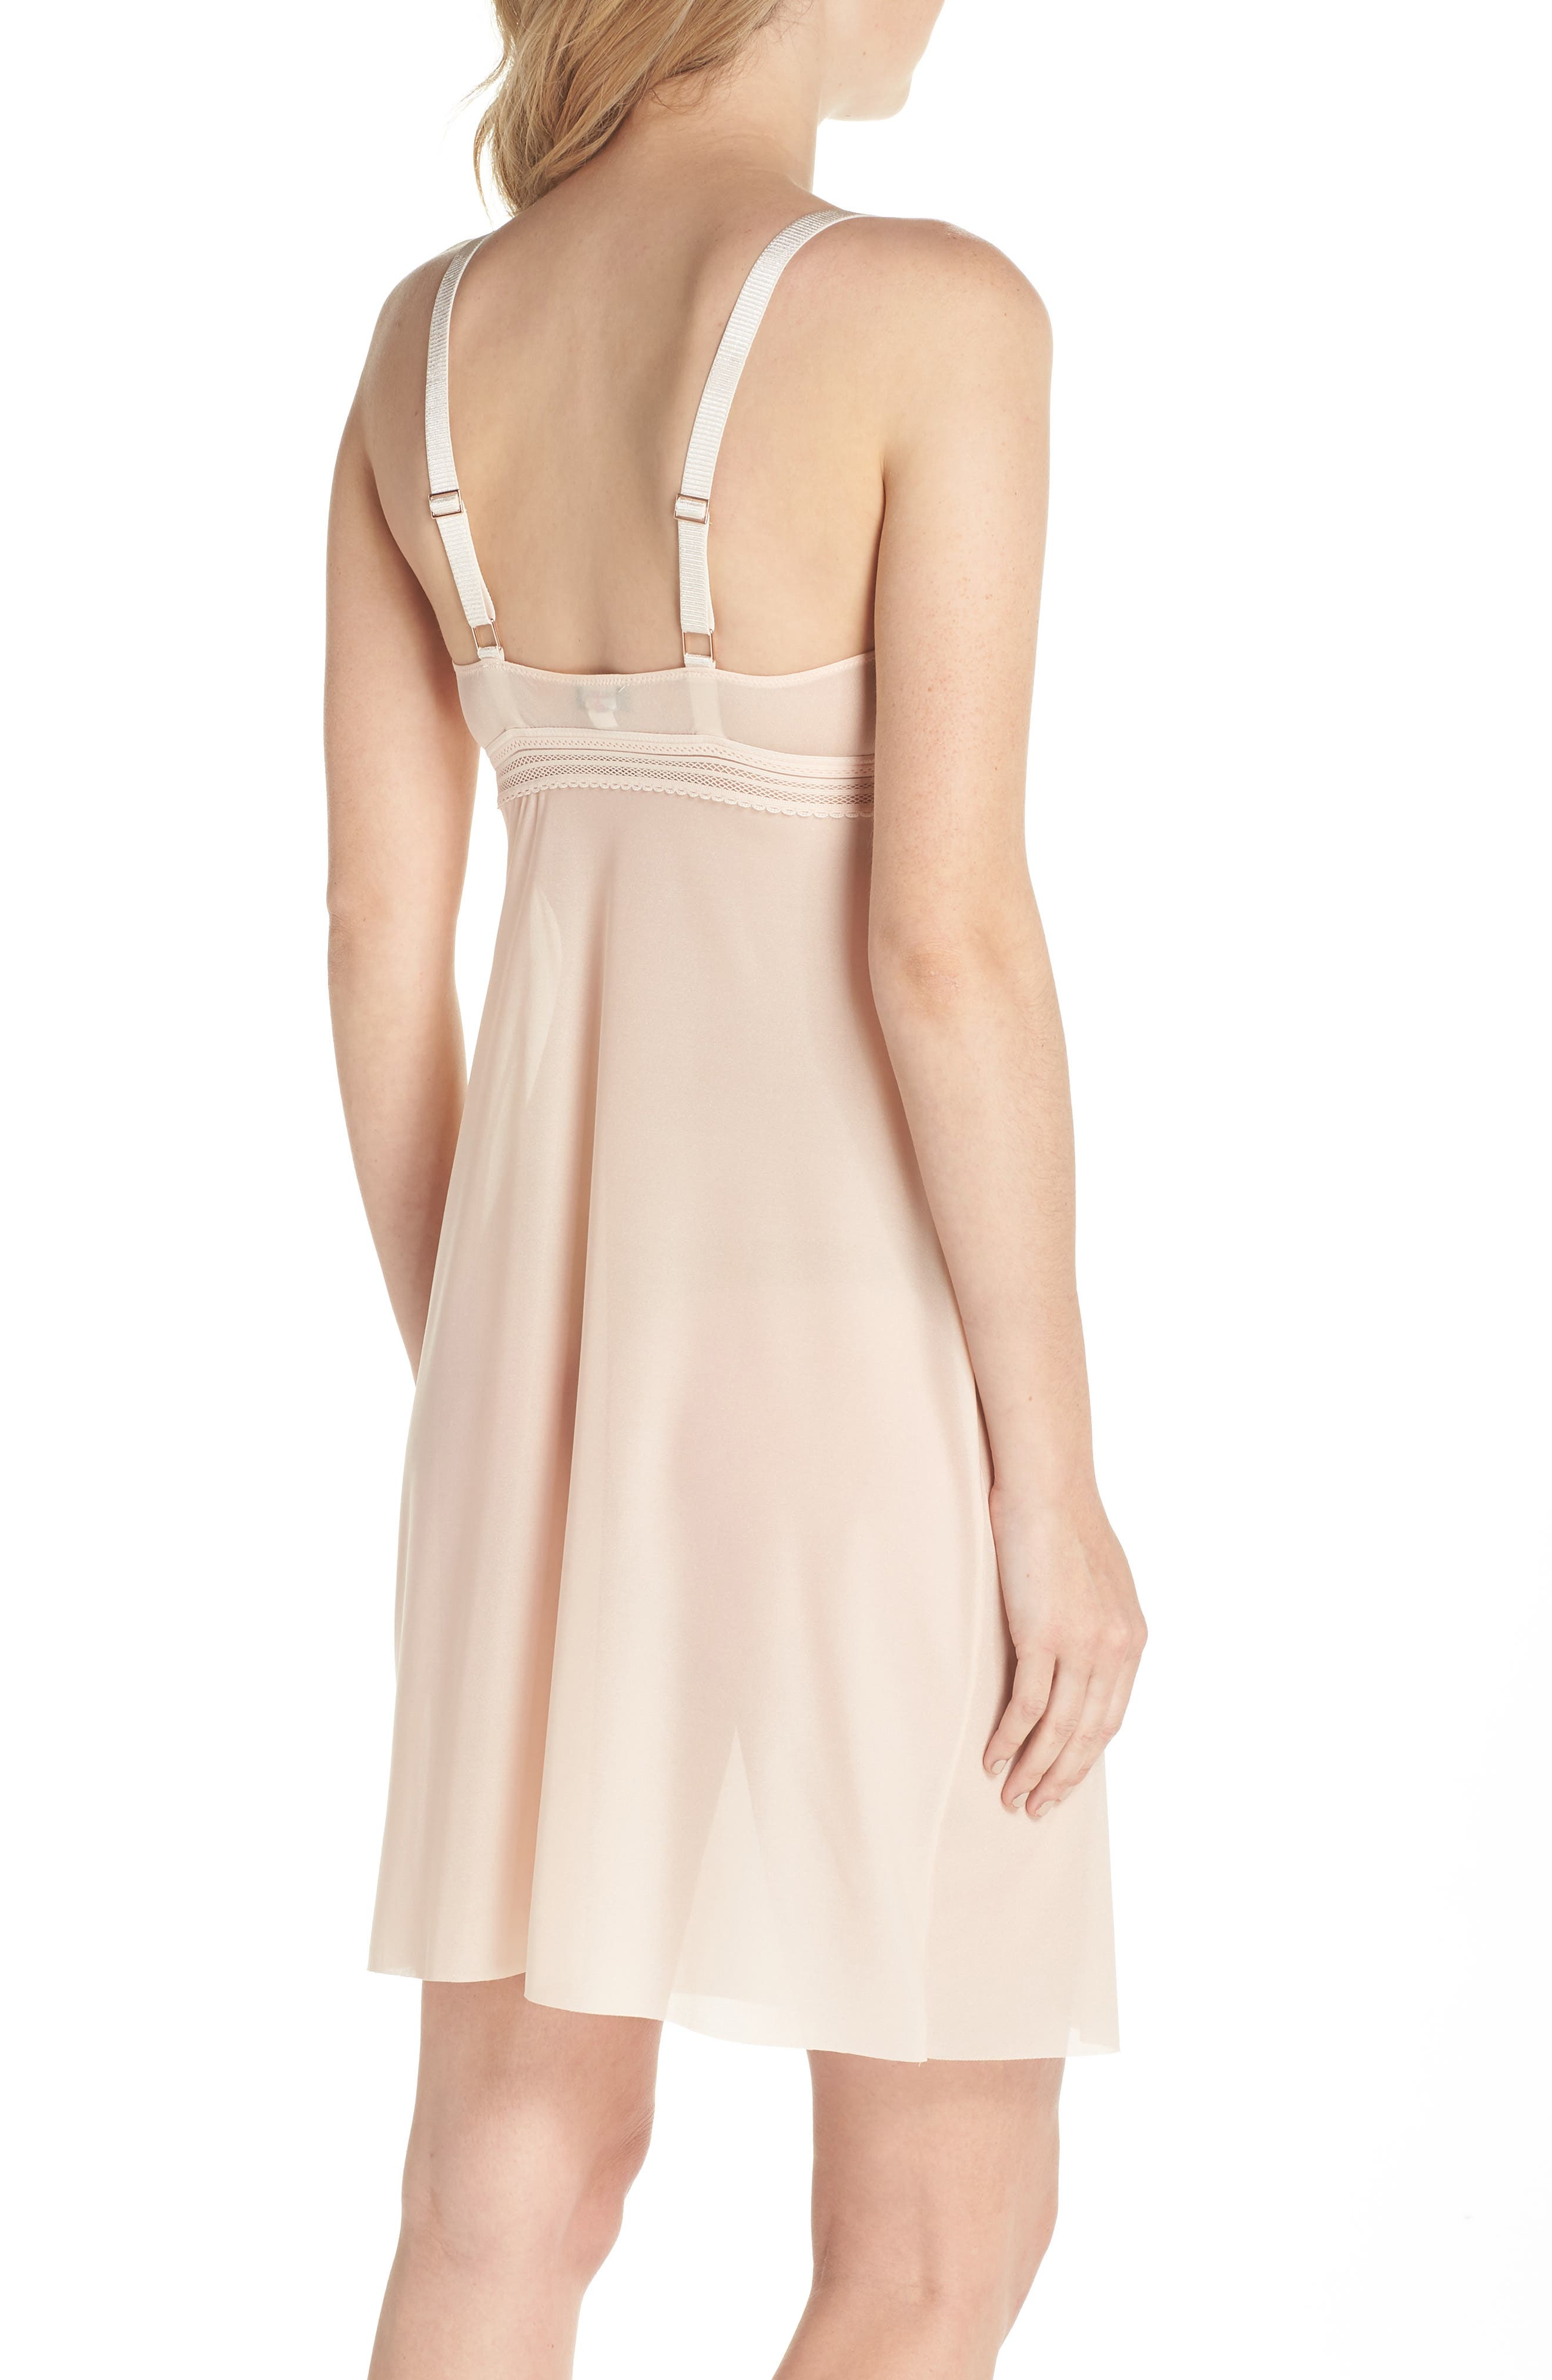 Laced In Aire Chemise,                             Alternate thumbnail 2, color,                             Nude Rose